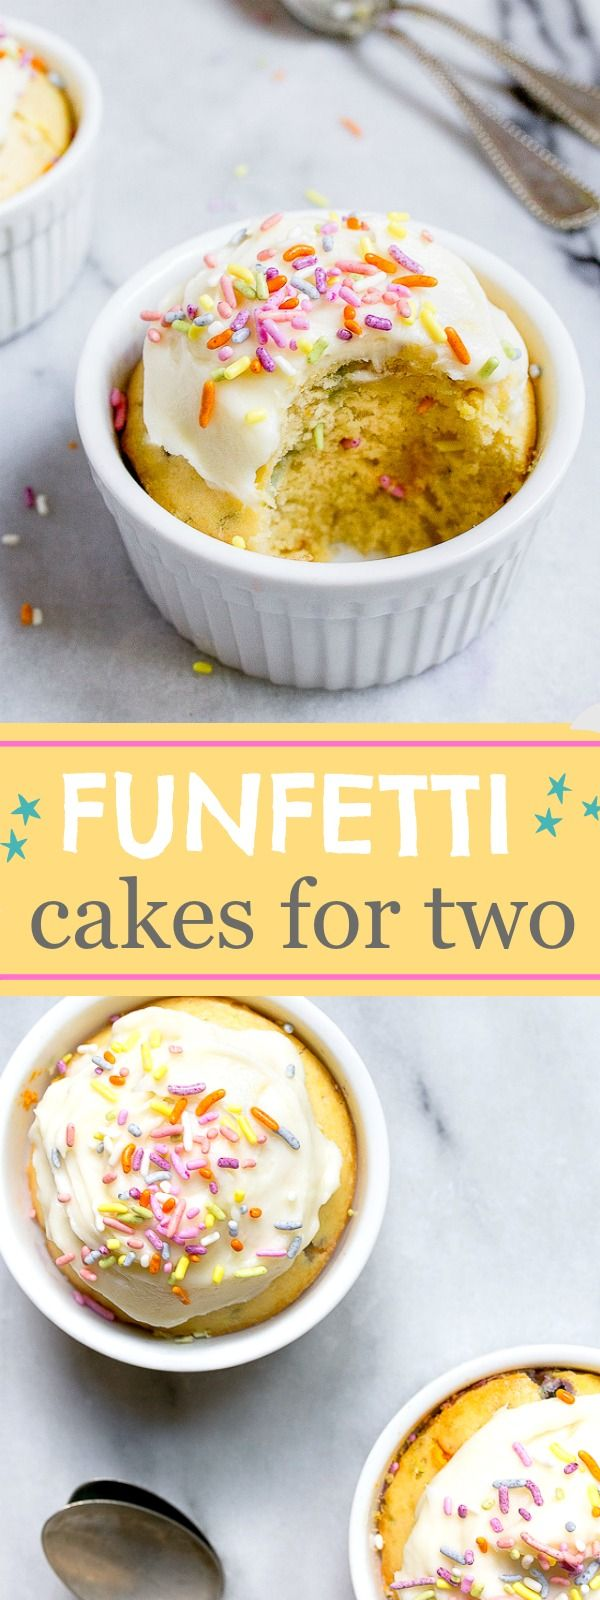 Funfetti cake FROM SCRATCH for two, made in ramekins to serve two! Homemade funfetti mini cakes for two are the BEST cakes.